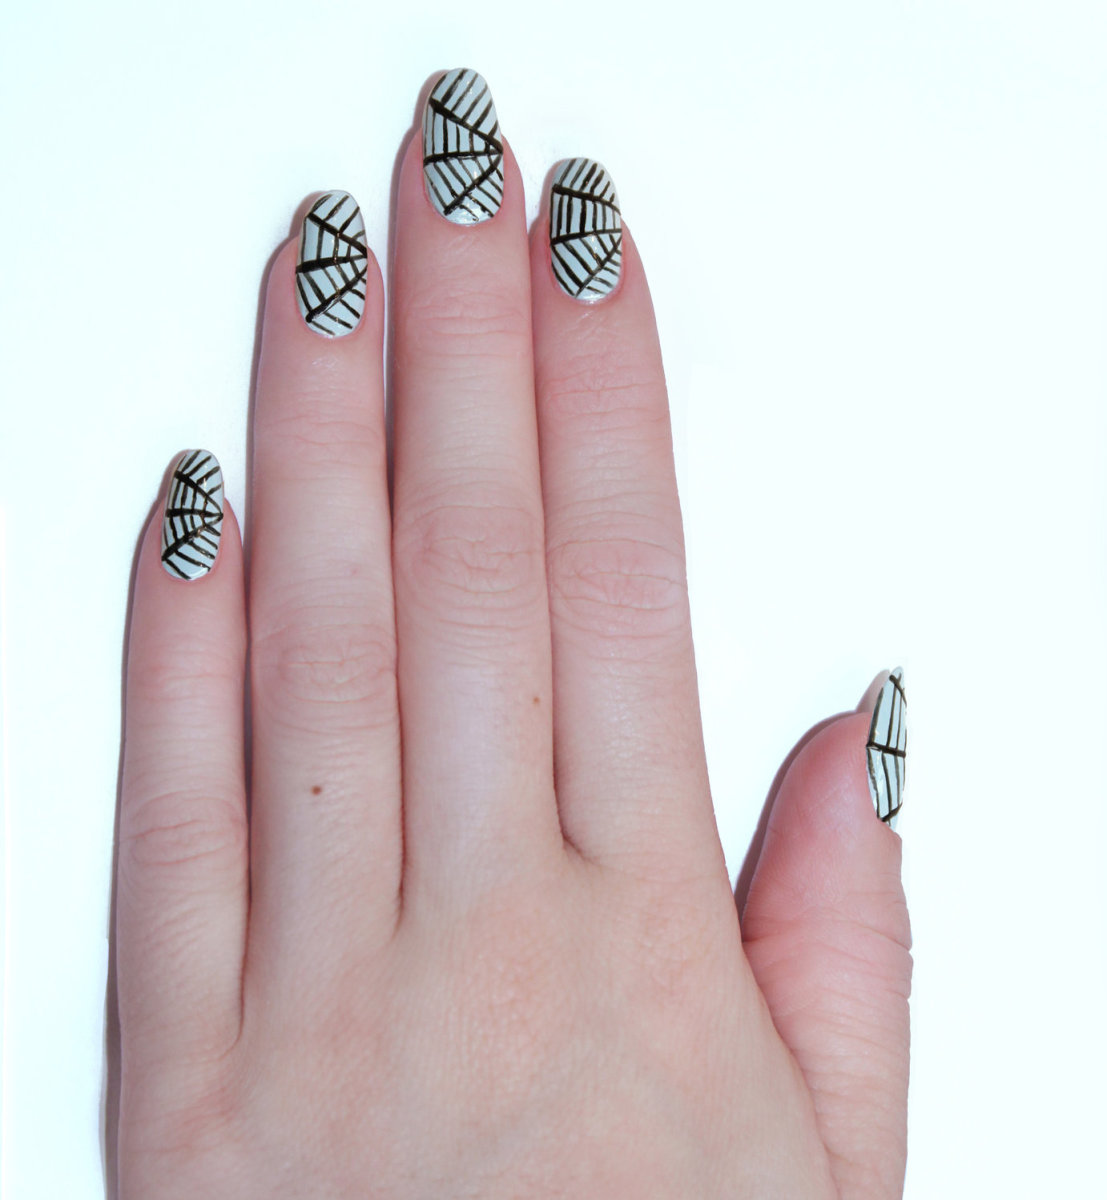 Spider web nails (step 3)